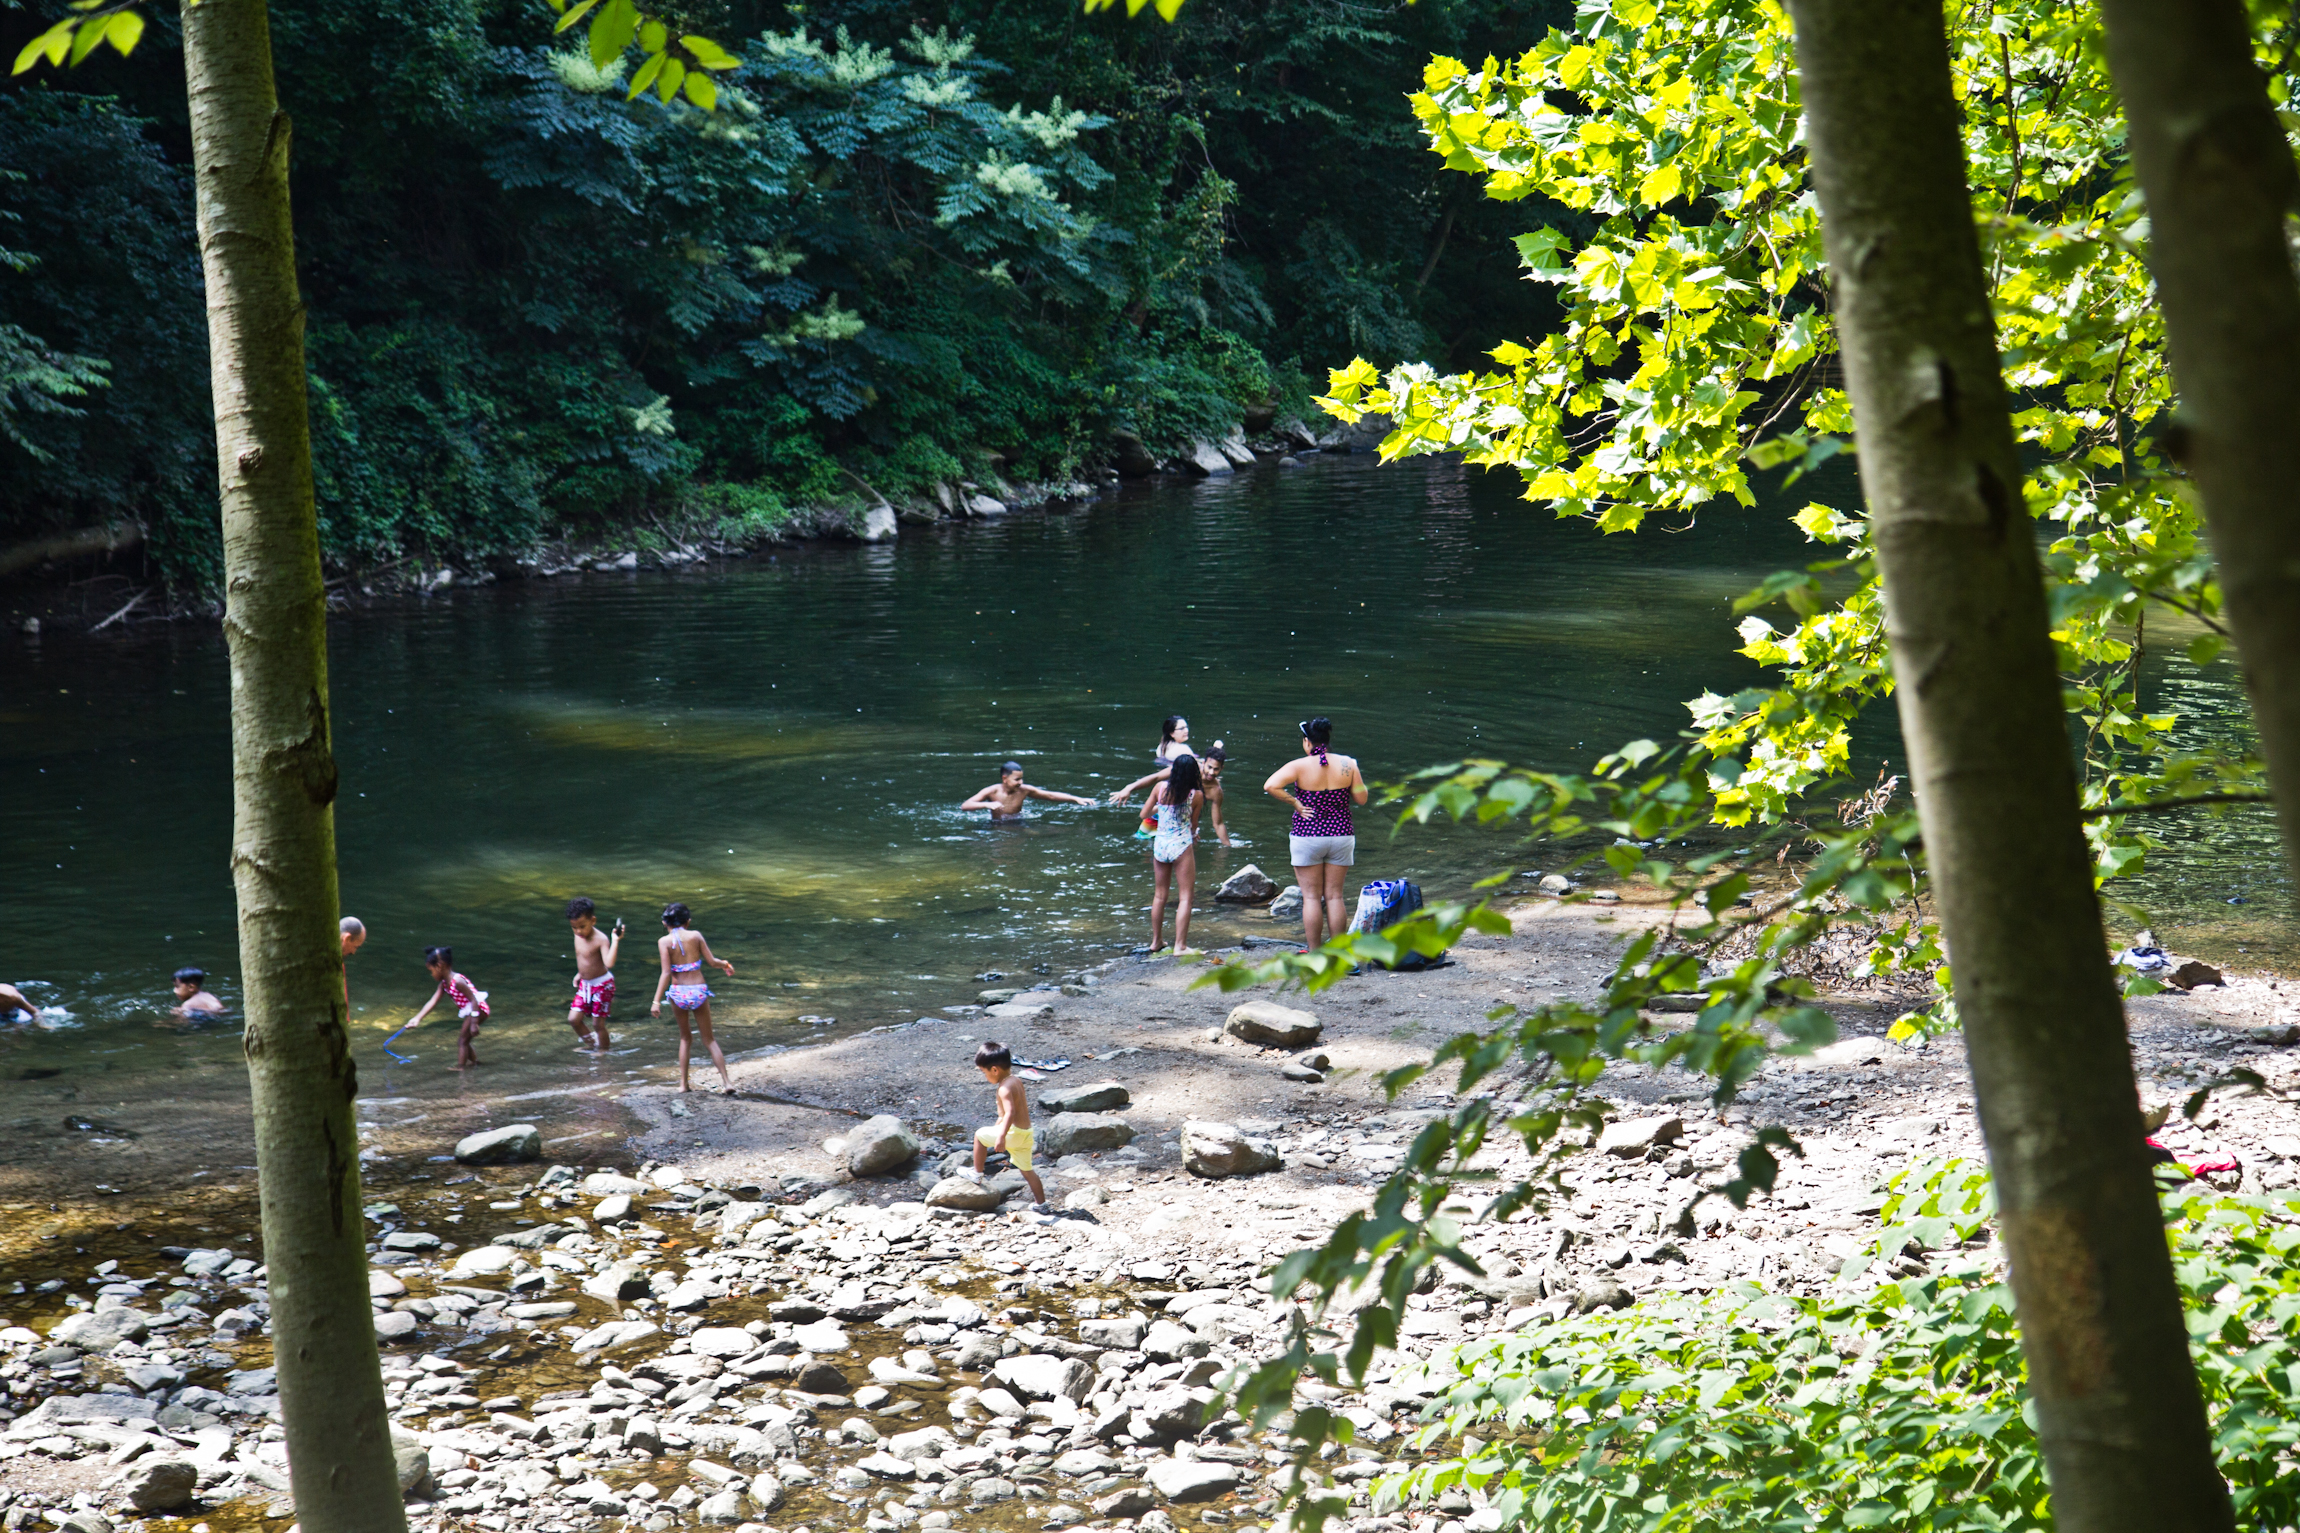 Swimming in the Wissahickon isn't so idyllic: There's poop